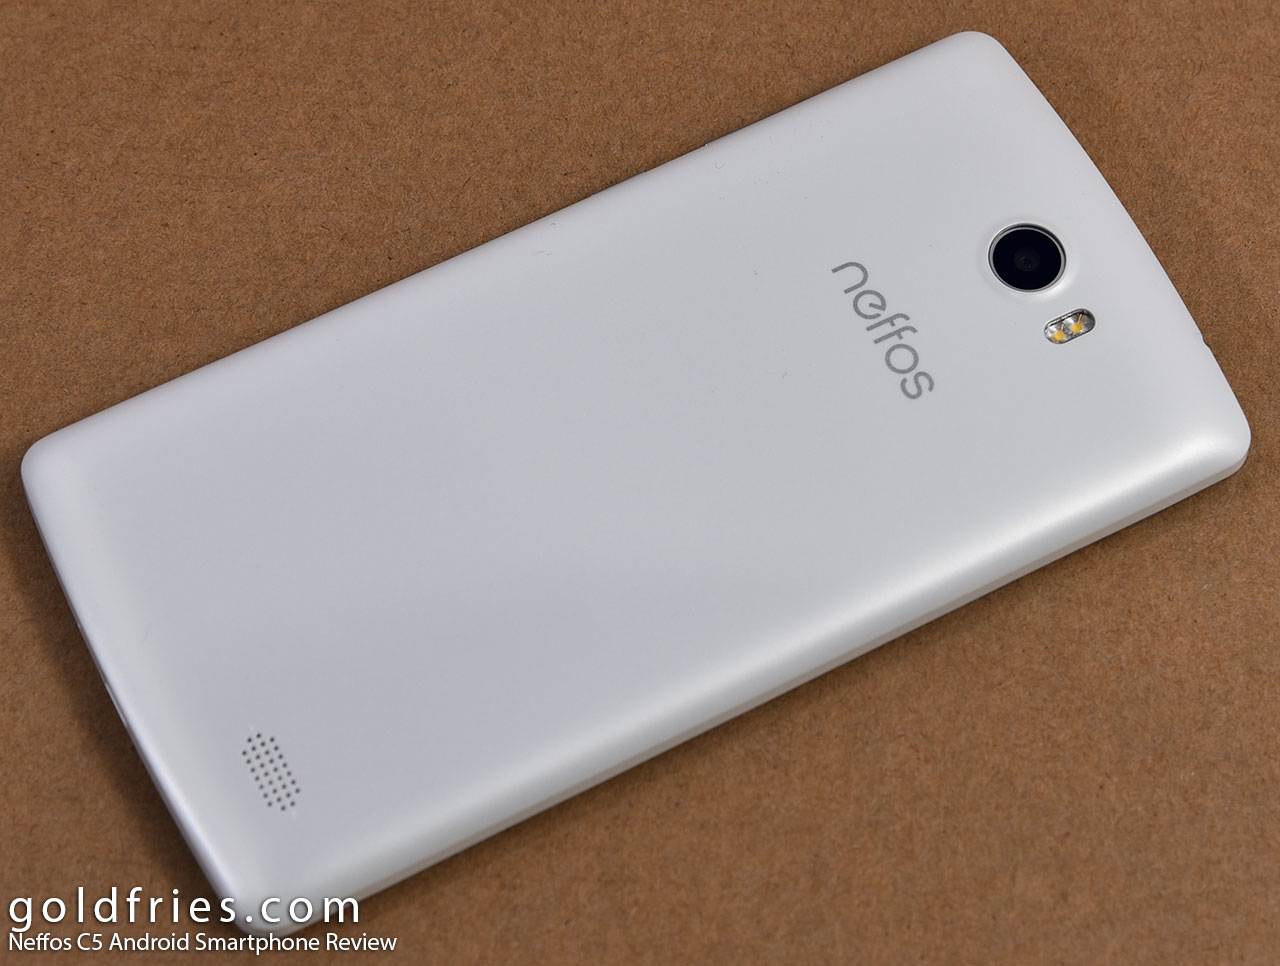 Neffos C5 Android Smartphone Review